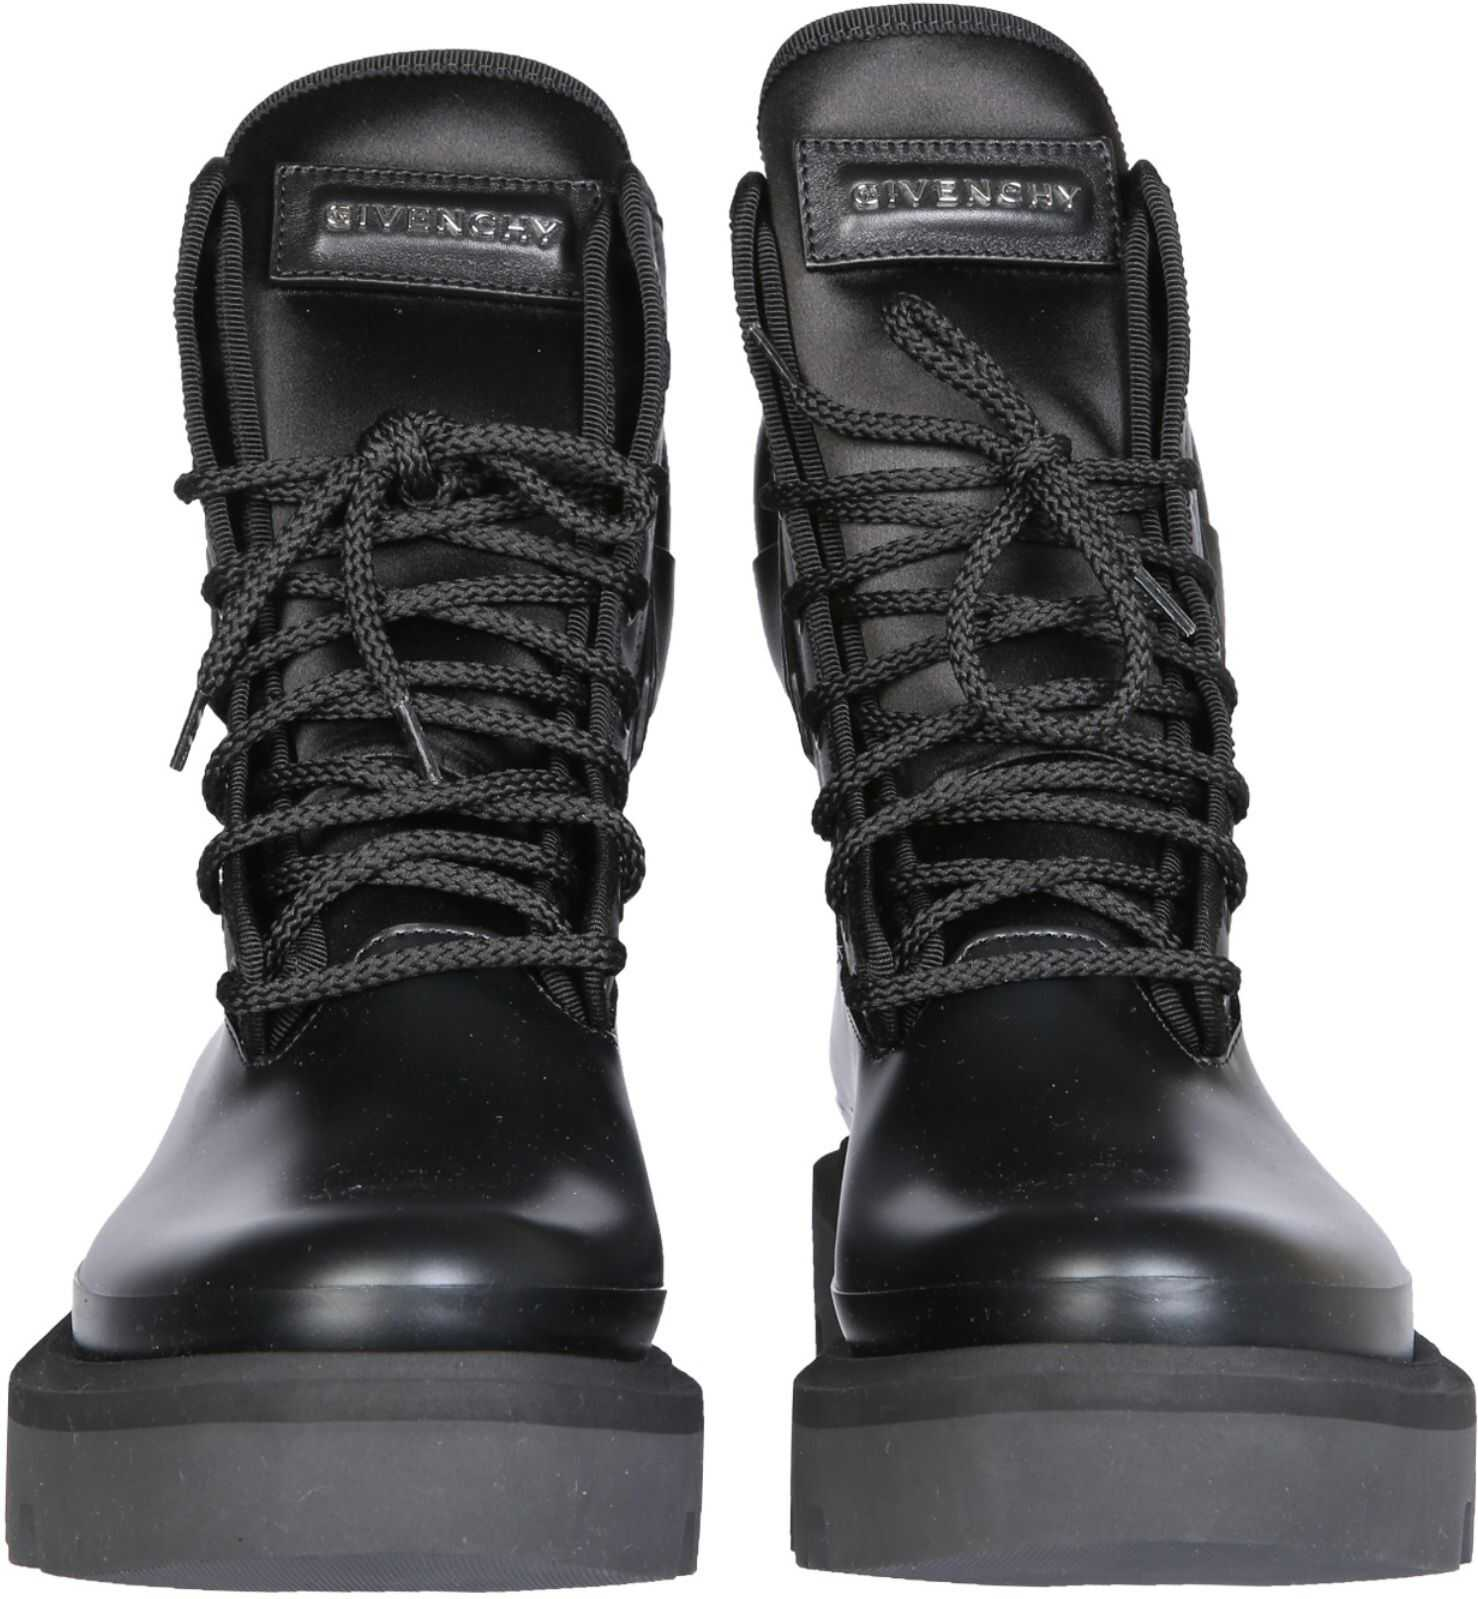 Givenchy Combat Boots BE602NE0Y0_001 BLACK imagine b-mall.ro